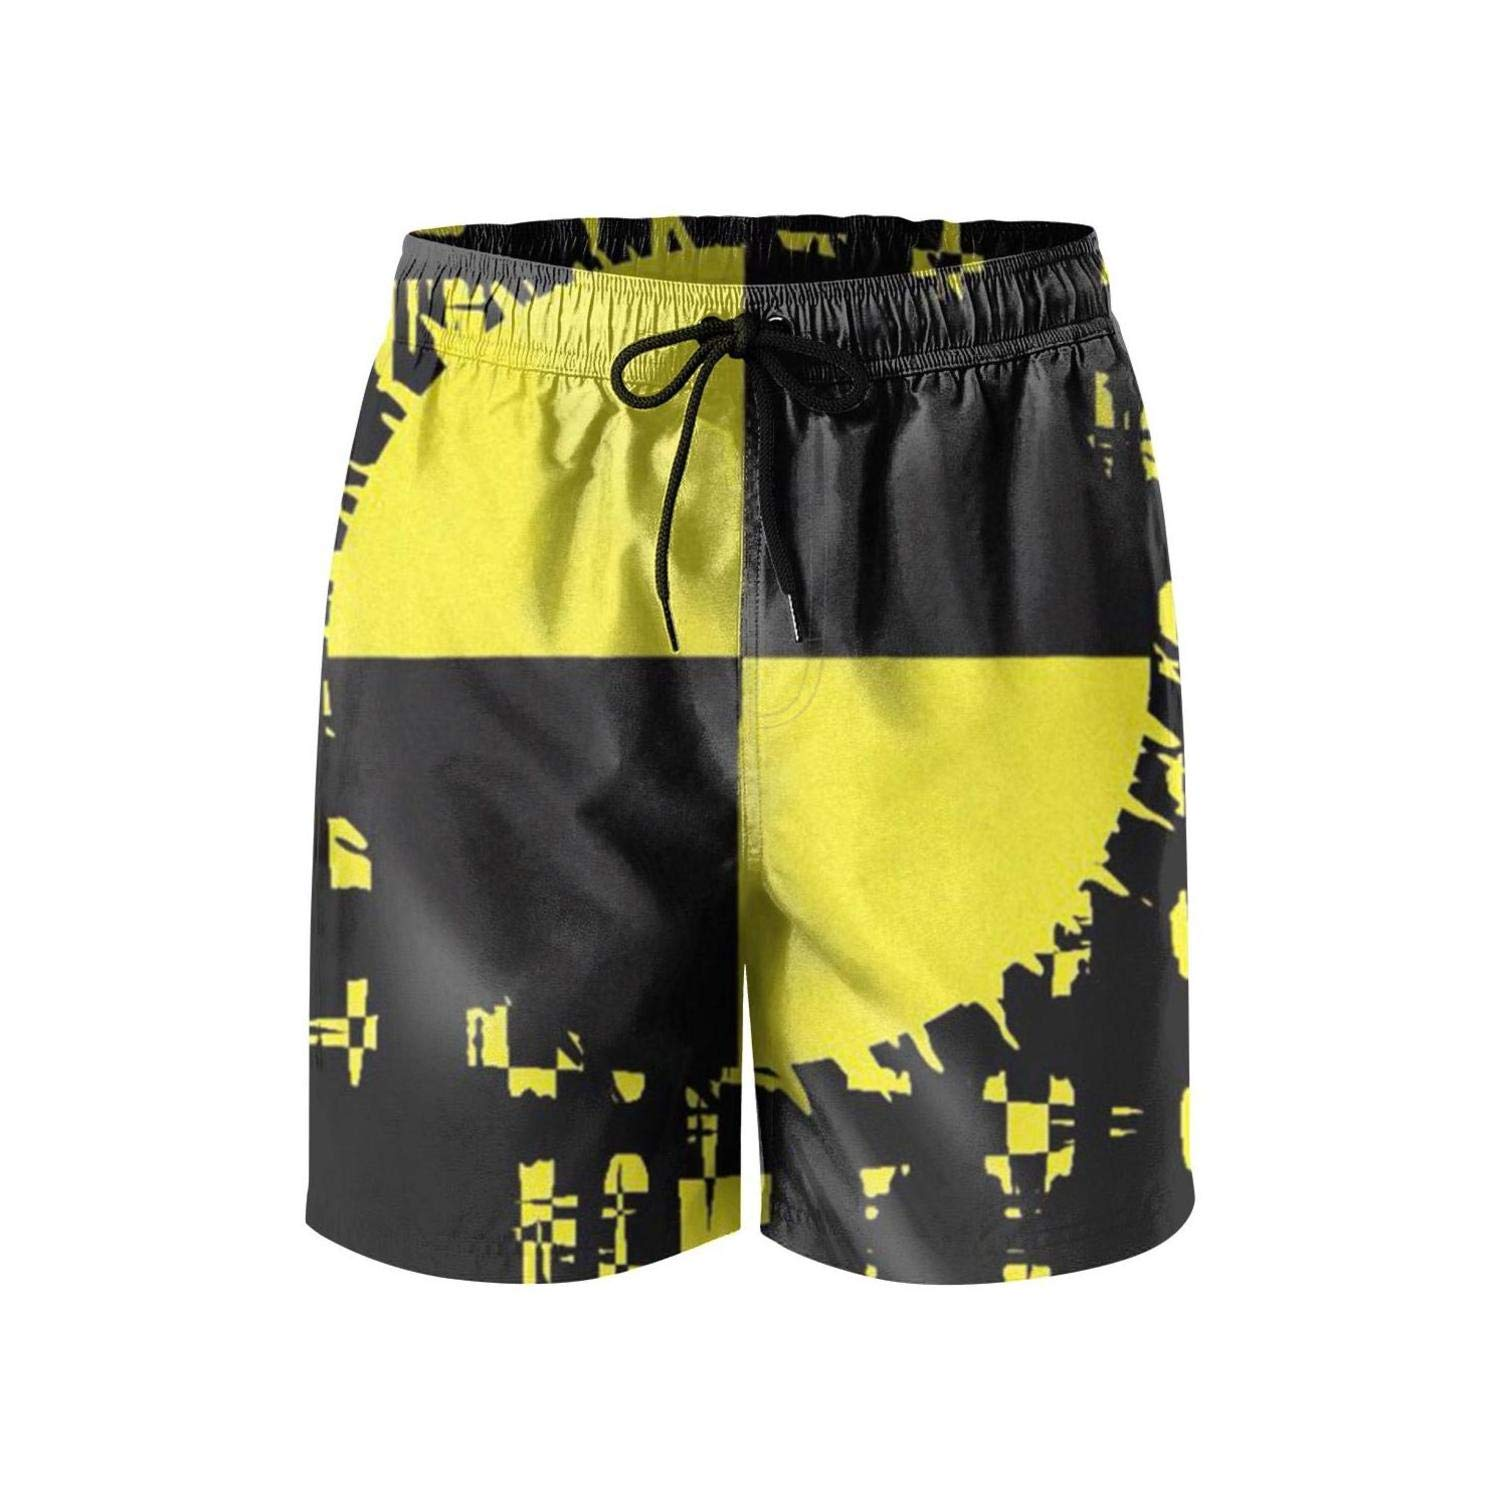 Mens Beach Shorts Design Music Surfing Shorts Jogging Vacation Quick Dry